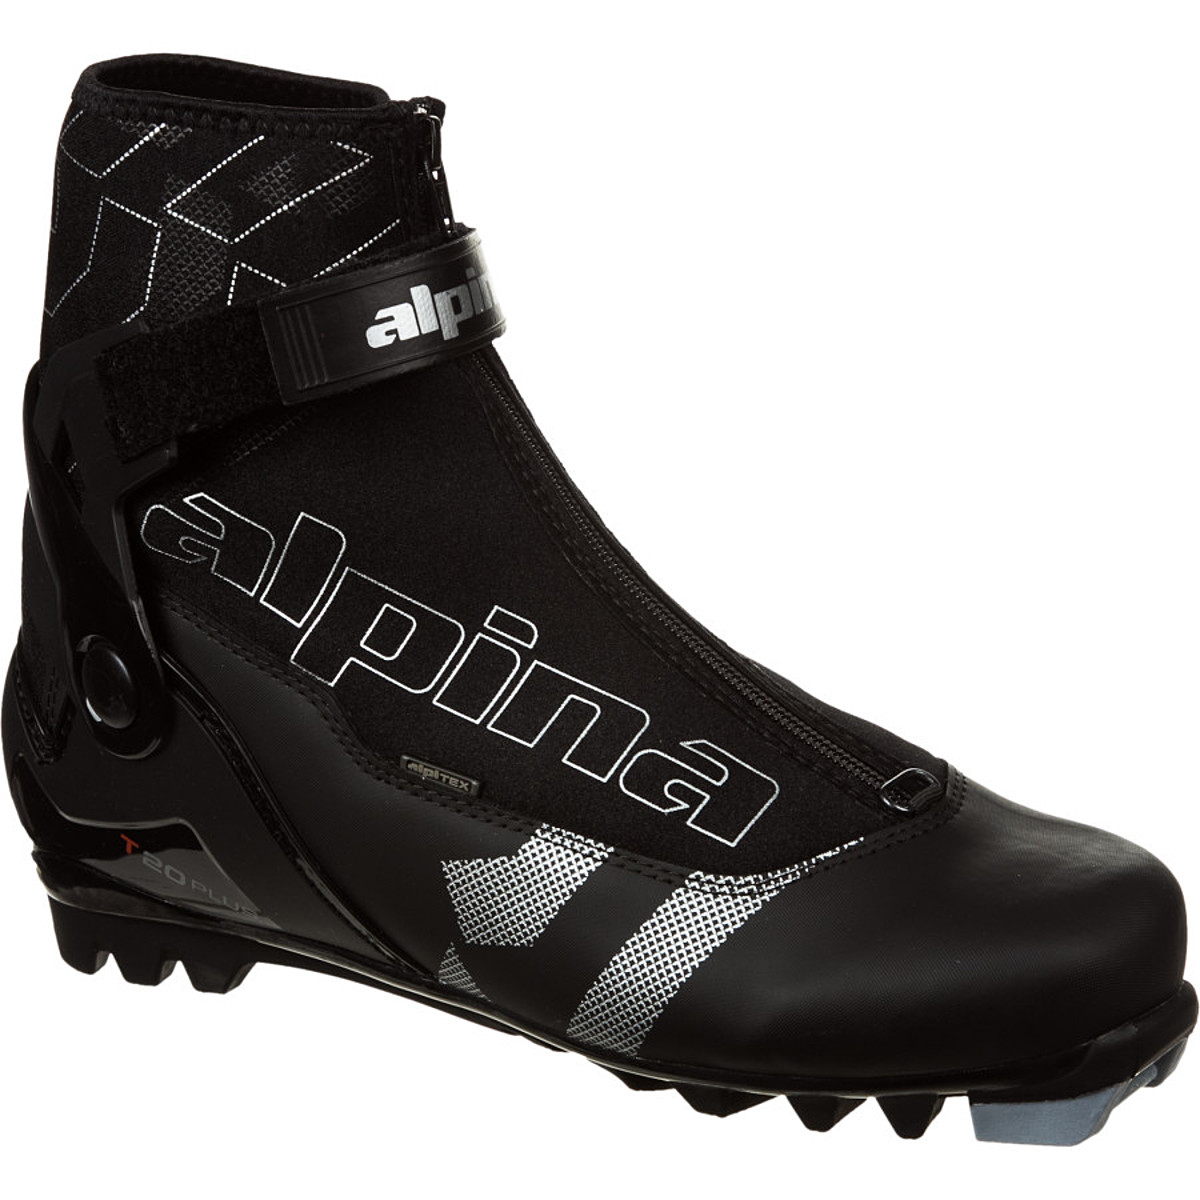 photo: Alpina T20 Plus nordic touring boot